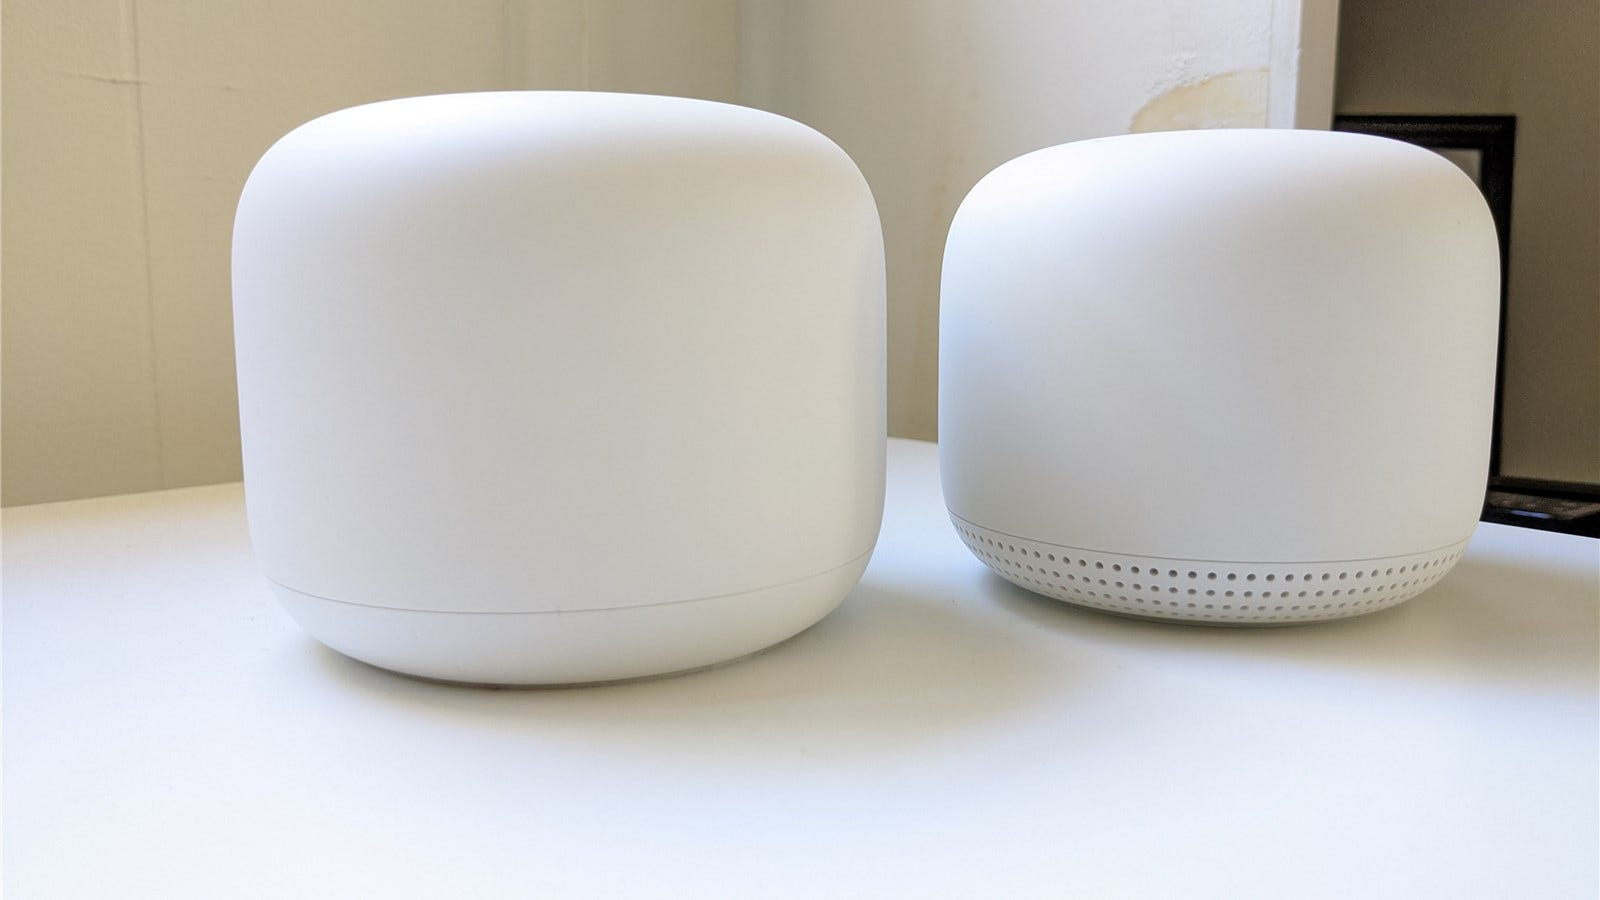 Nest Wifi router and point